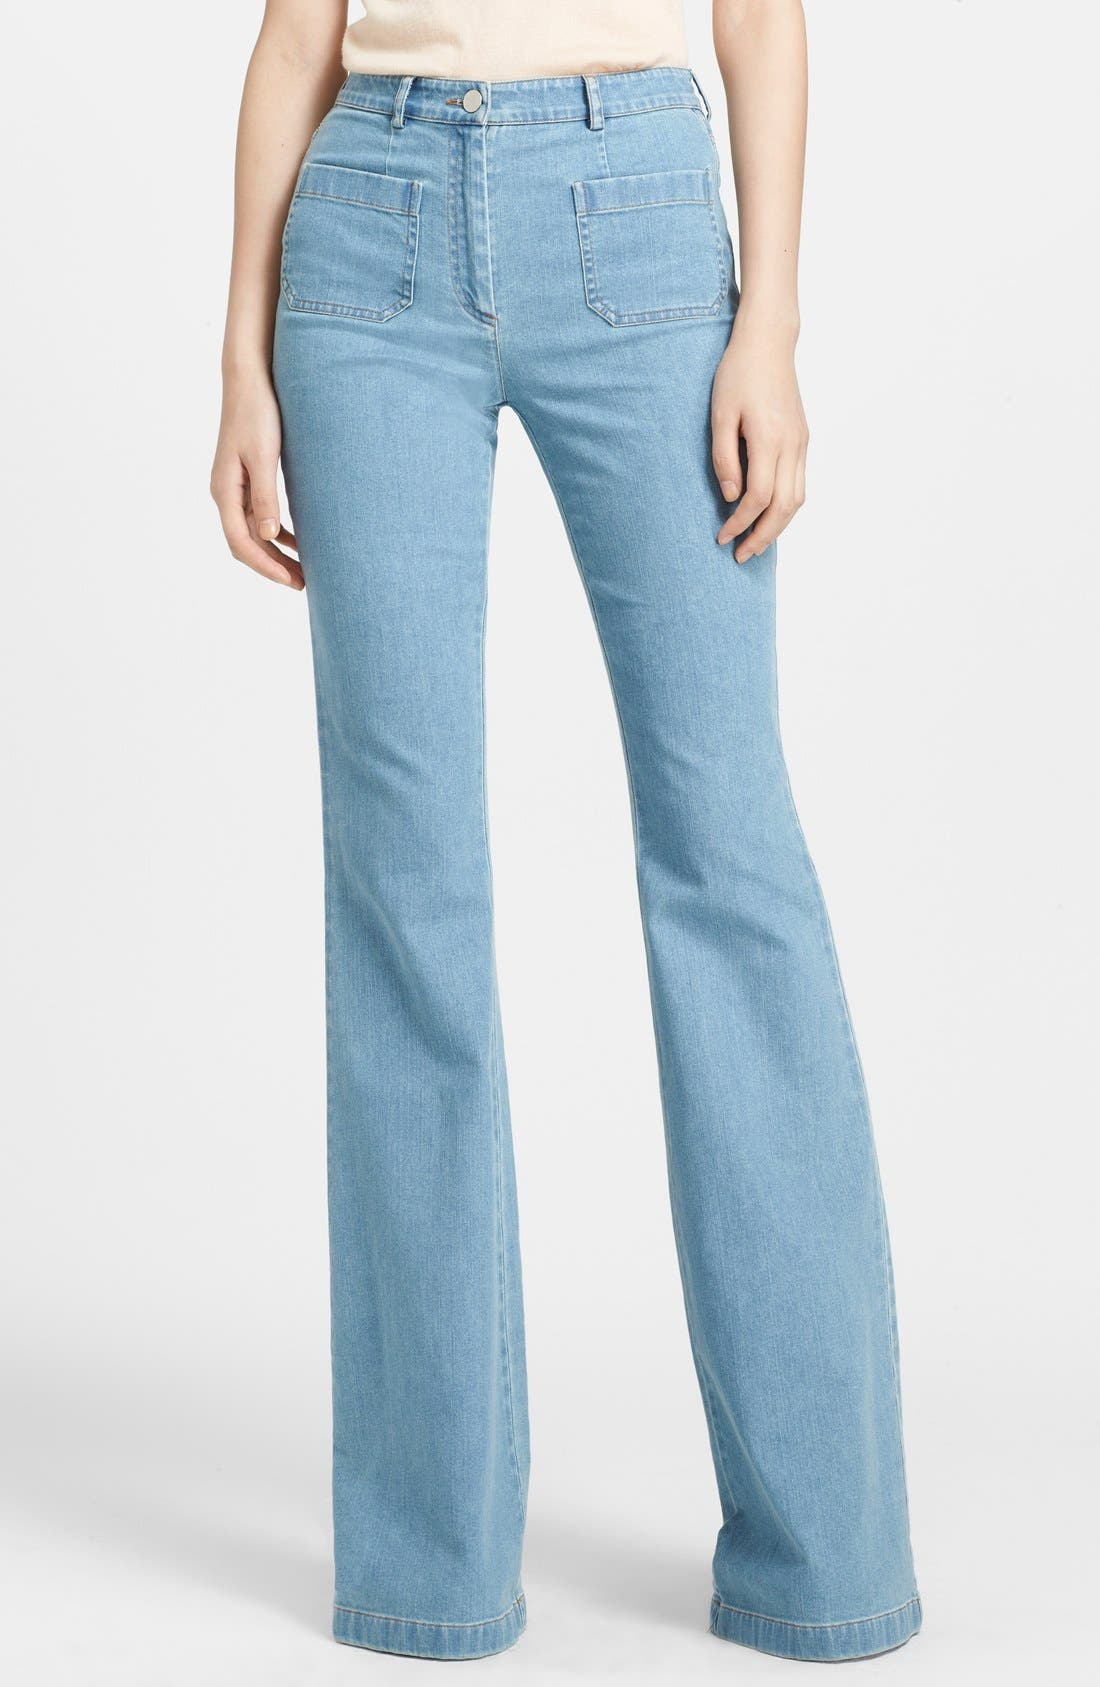 Main Image - Michael Kors Bell Bottom Stretch Jeans